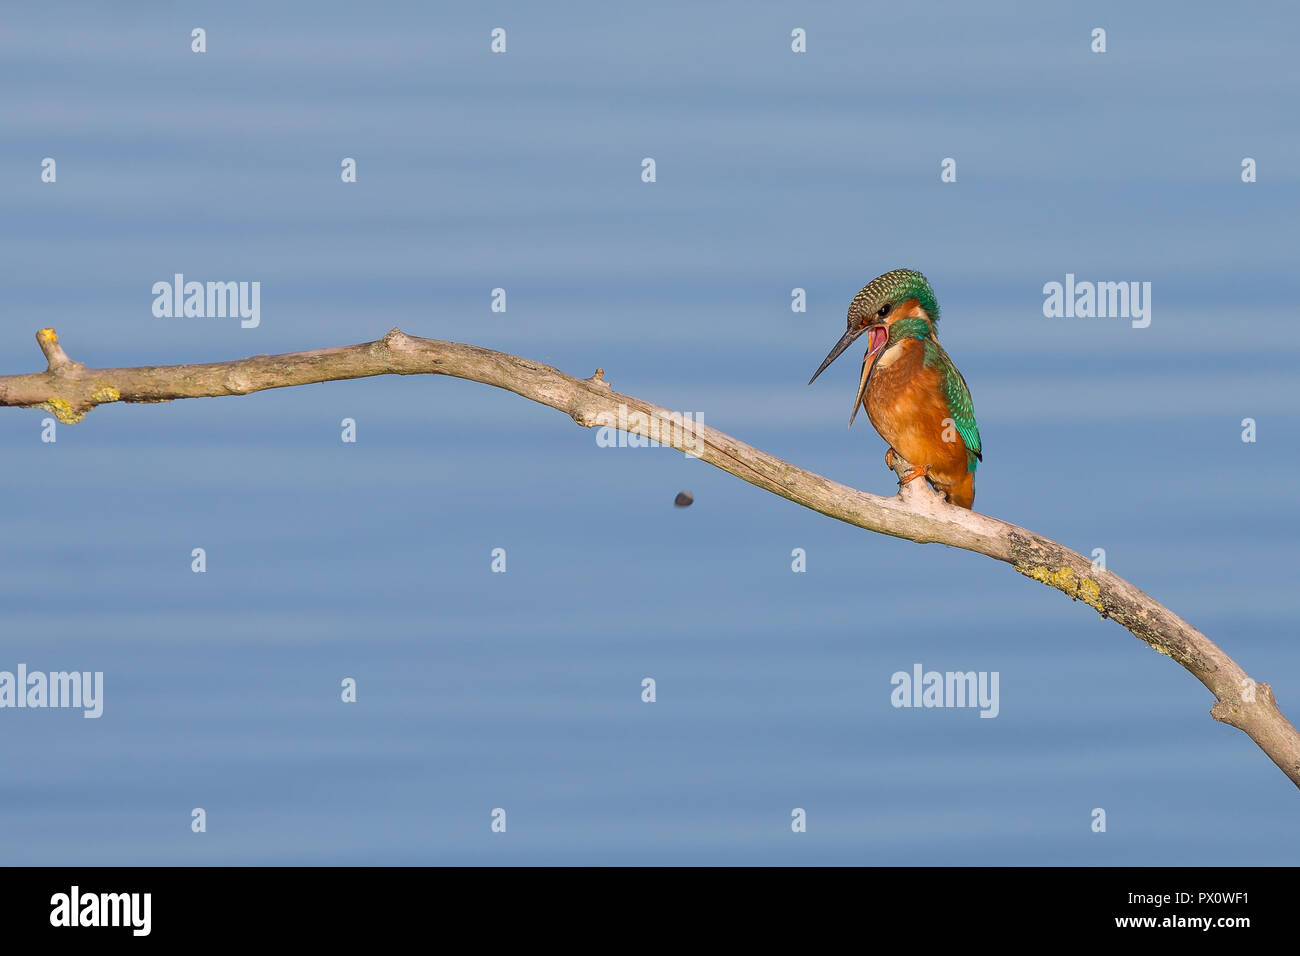 Detailed, close-up front view of comical UK kingfisher bird (Alcedo atthis) perched on branch, front-facing, beak open wide, coughing up pellet. - Stock Image